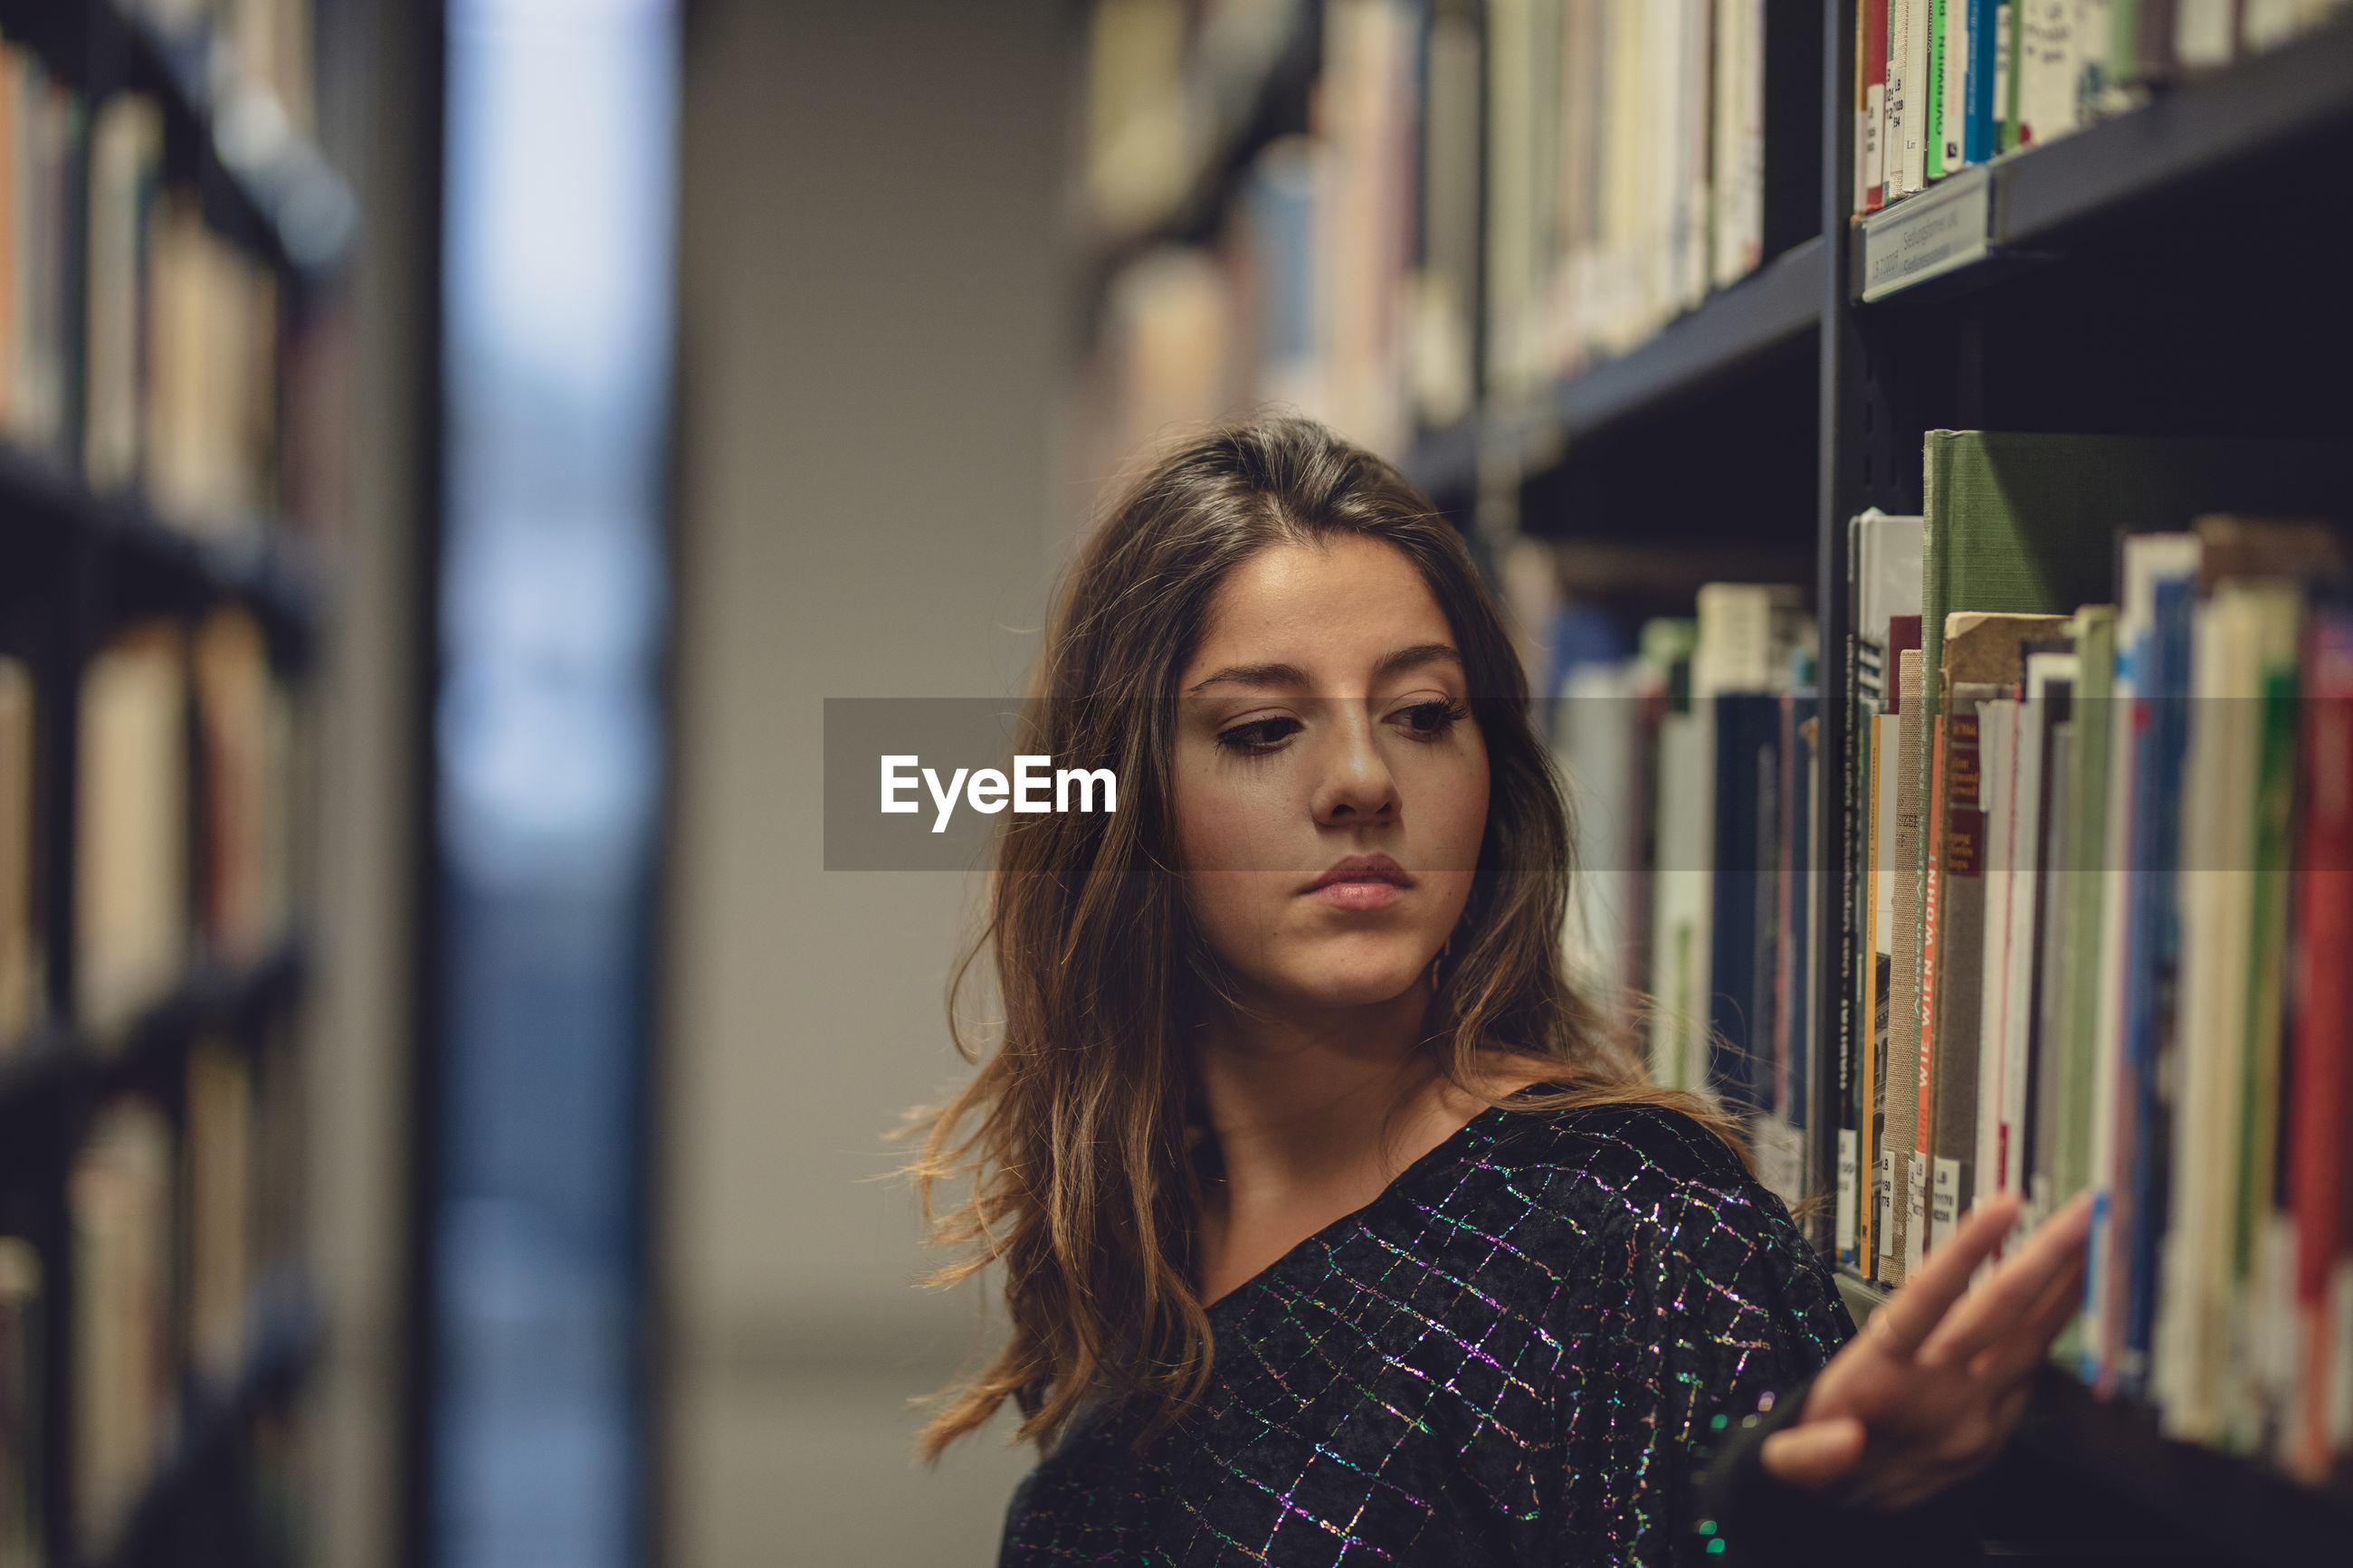 Young woman standing by bookshelf at library